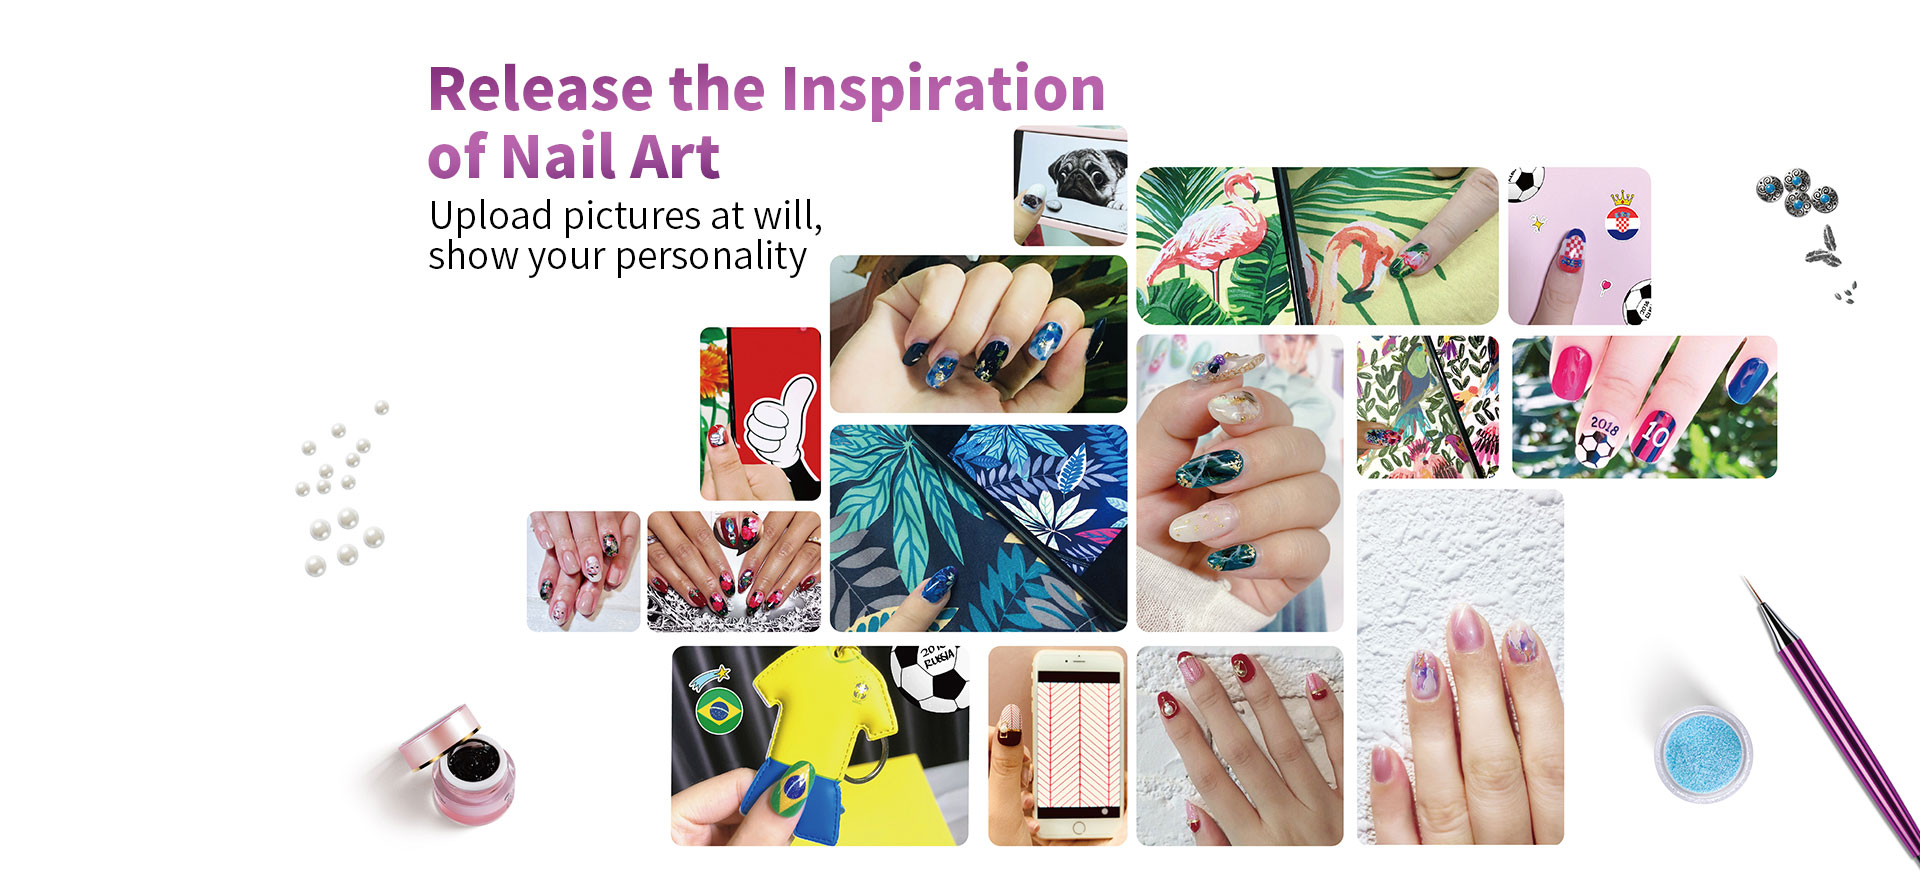 release the inspiration of nail art